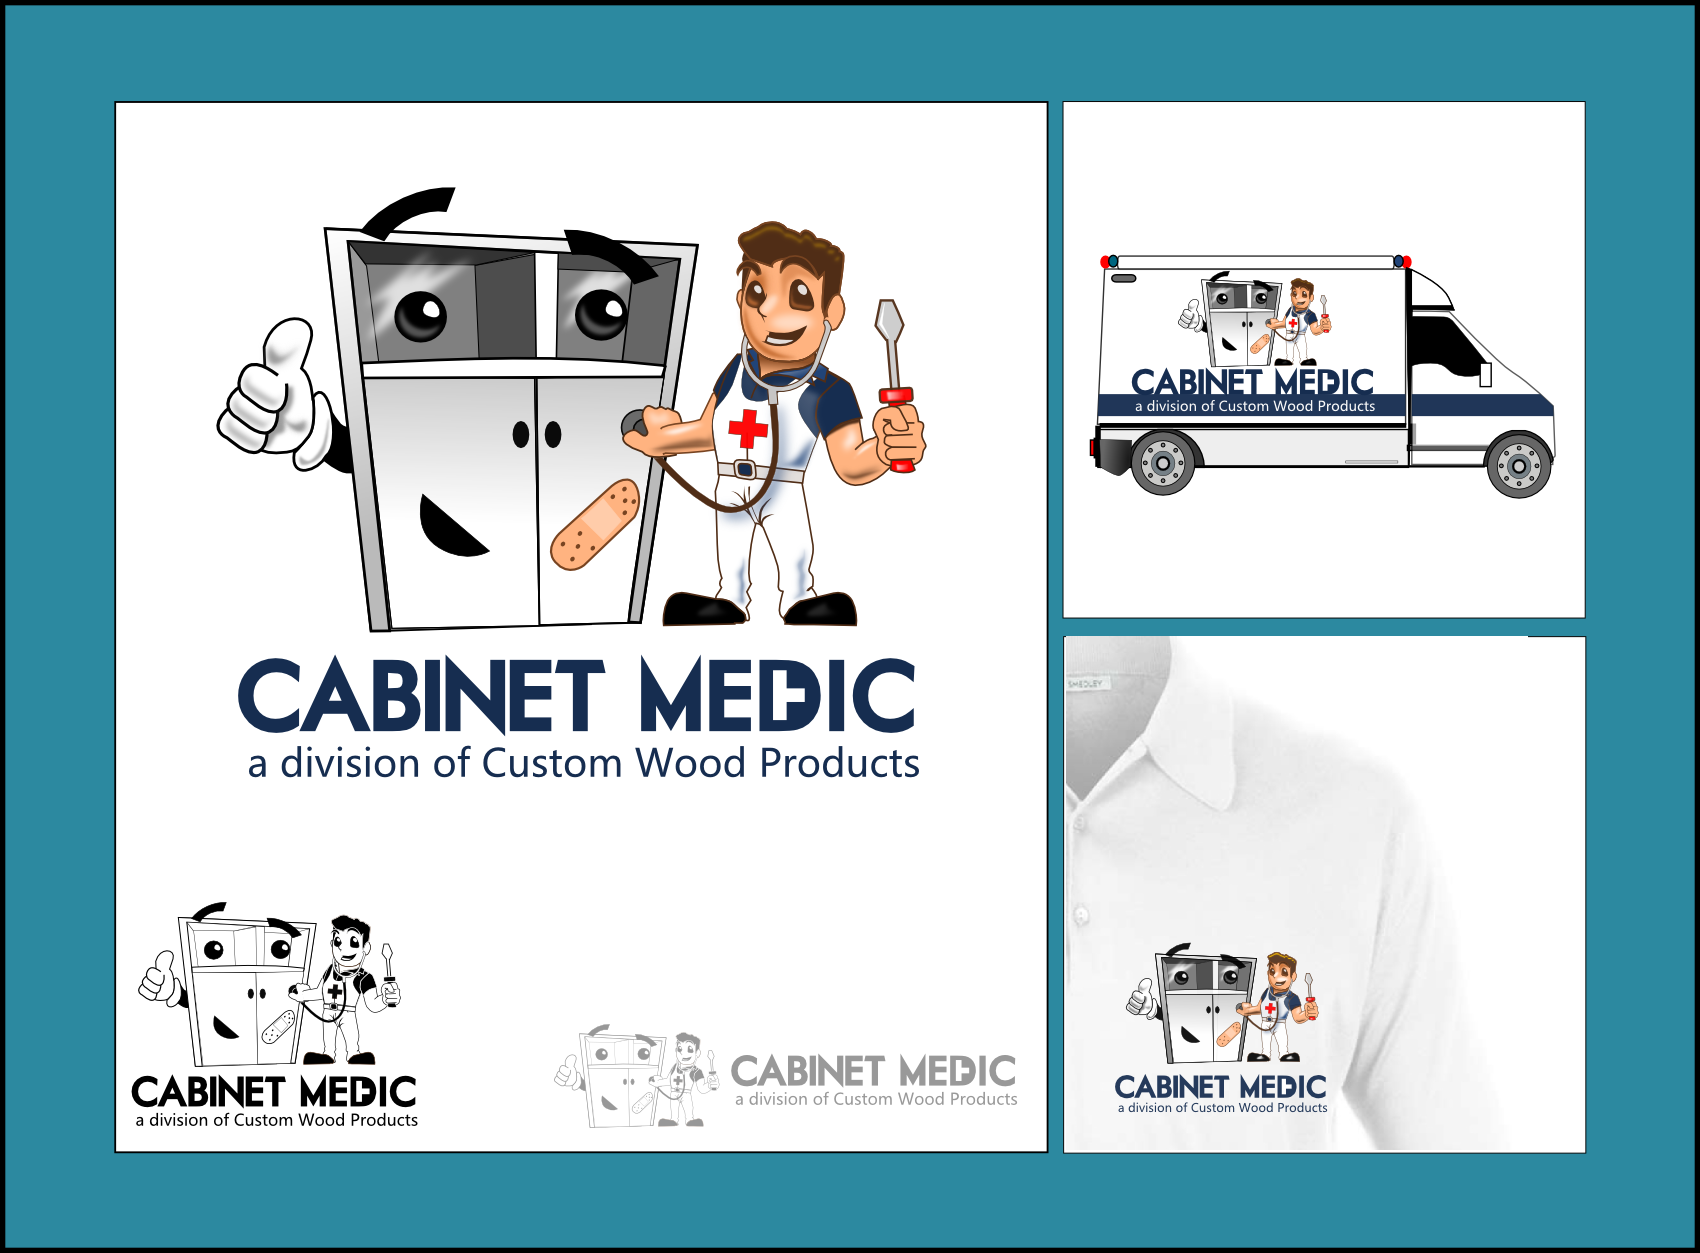 Help Cabinet Medic (a division of Custom Wood Products) with a new logo